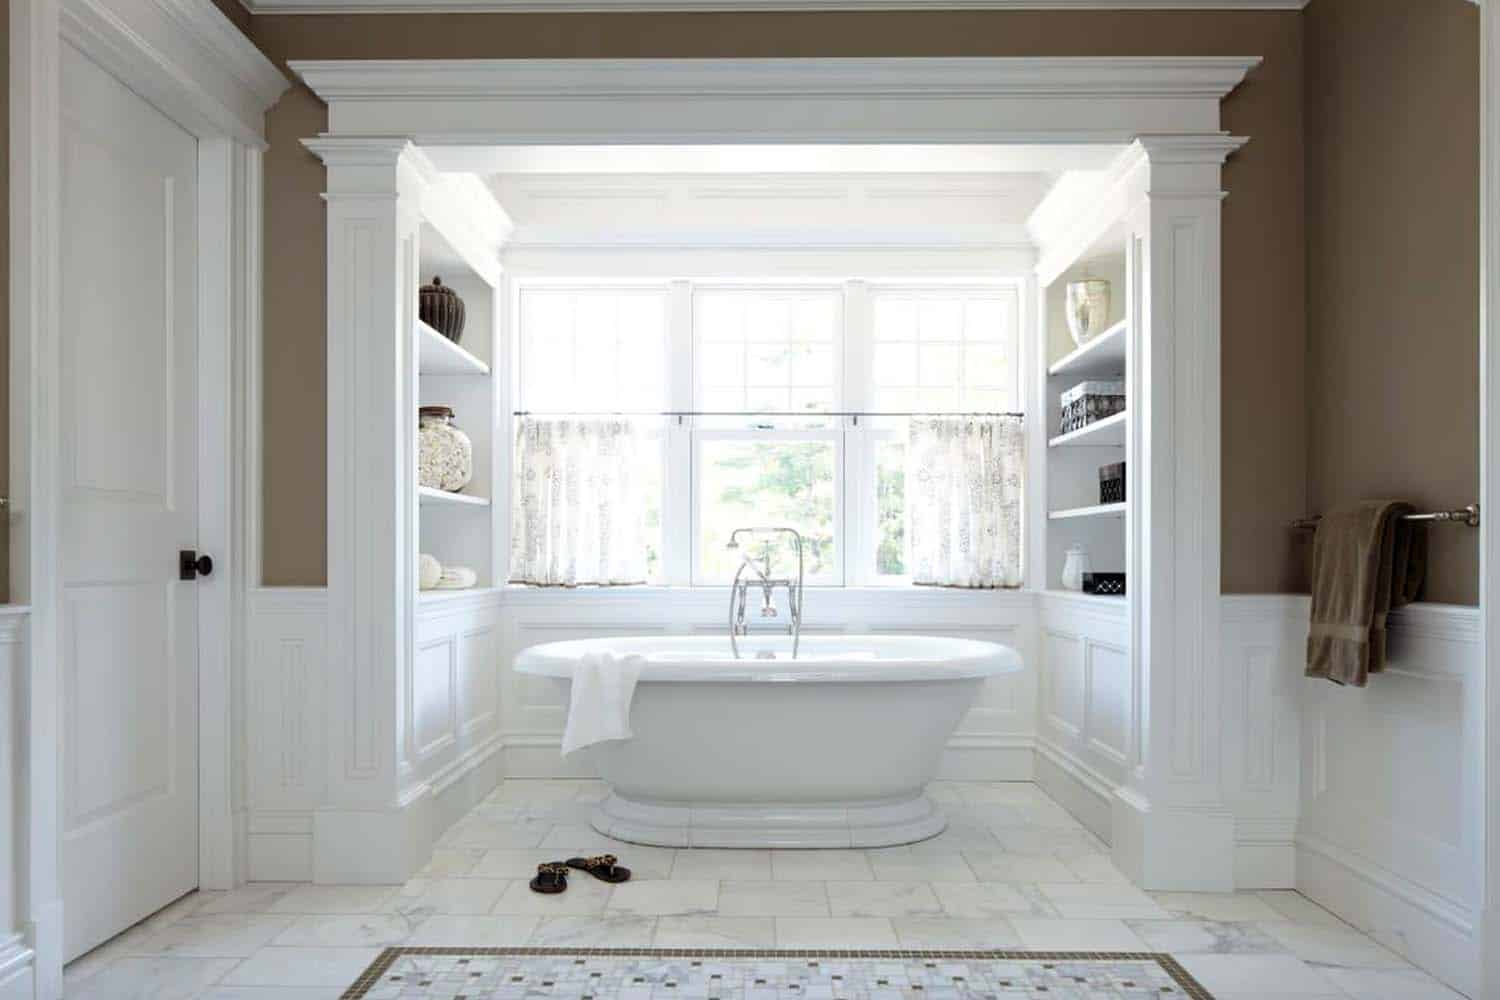 Freestanding Bathtub Ideas 07 1 Kindesign